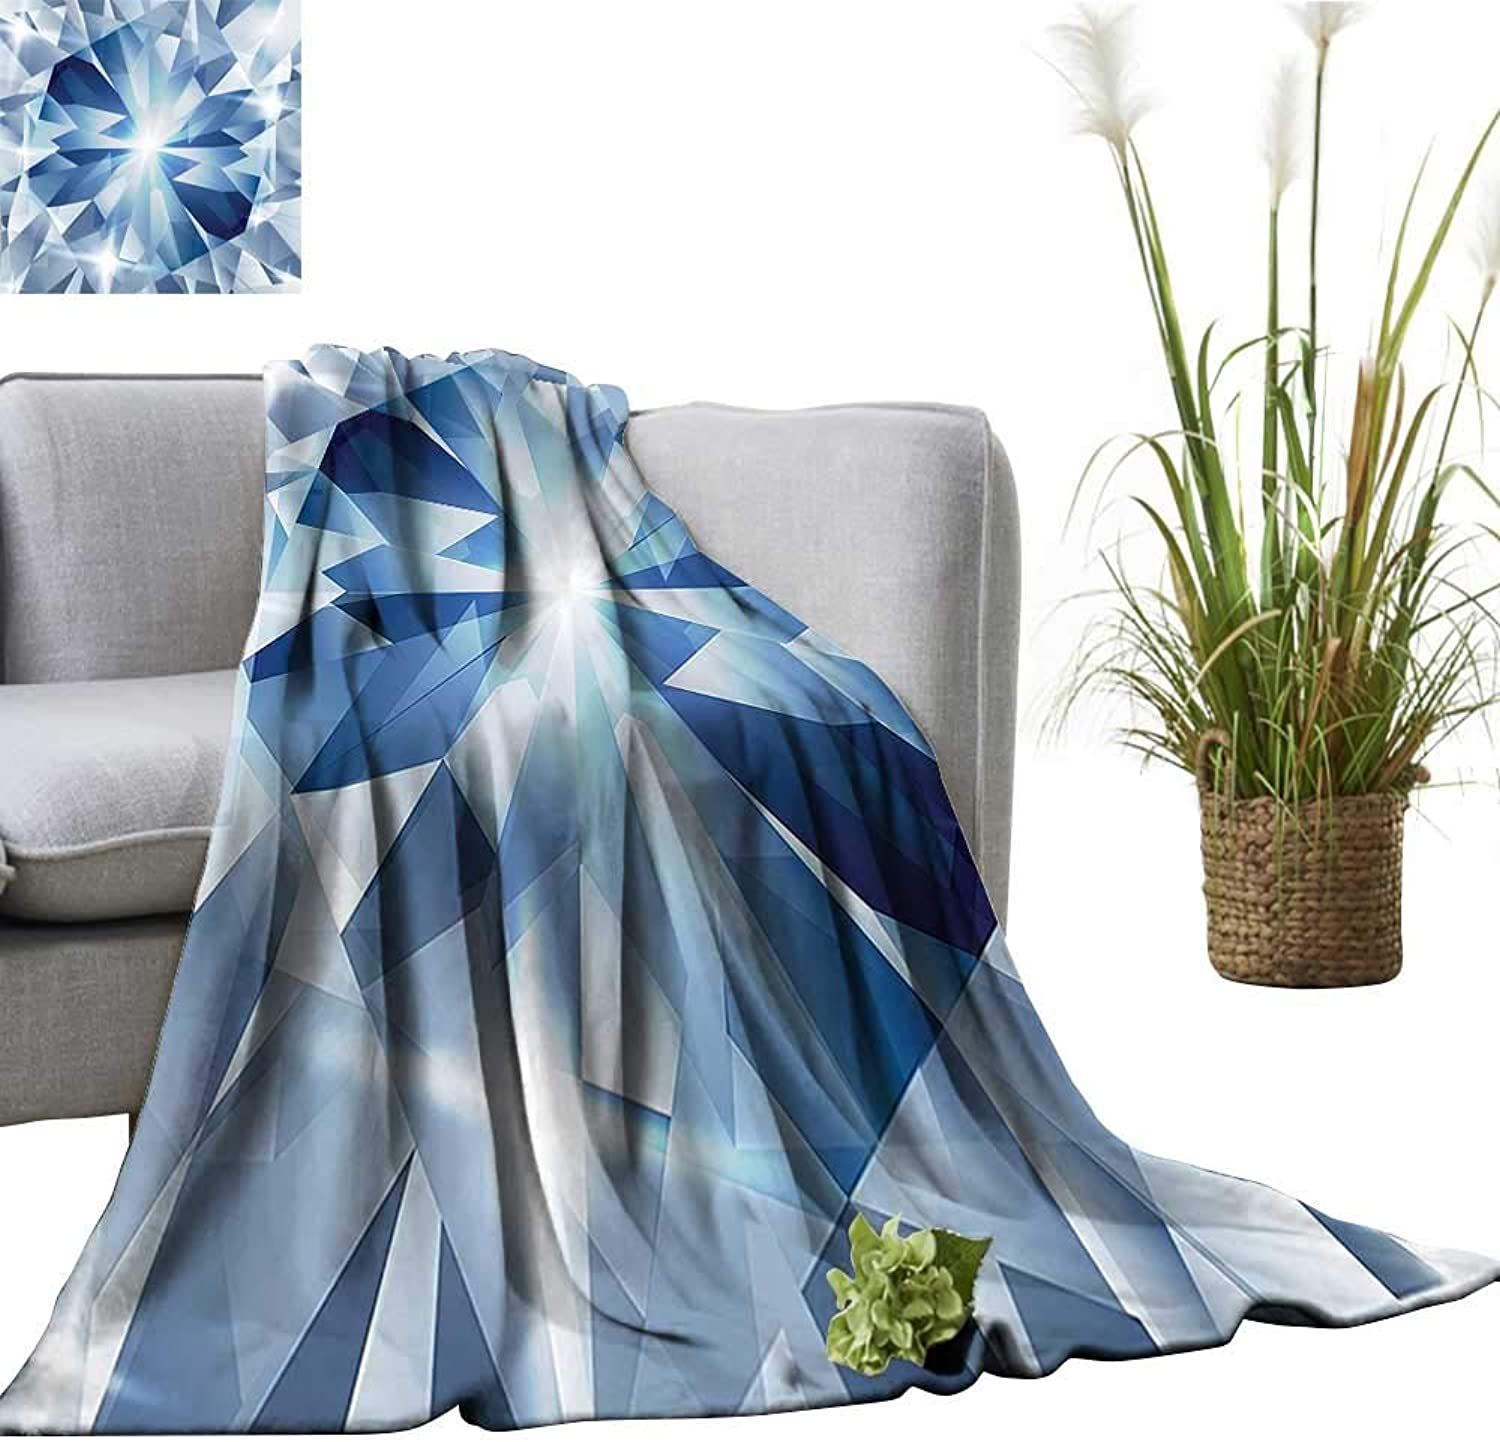 YOYI Travel Blanket Floral Shaded Group of Frozen Charming Diamonds Gems with Art Patterns Decorative bluee Easy to Carry Blanket 60 x70